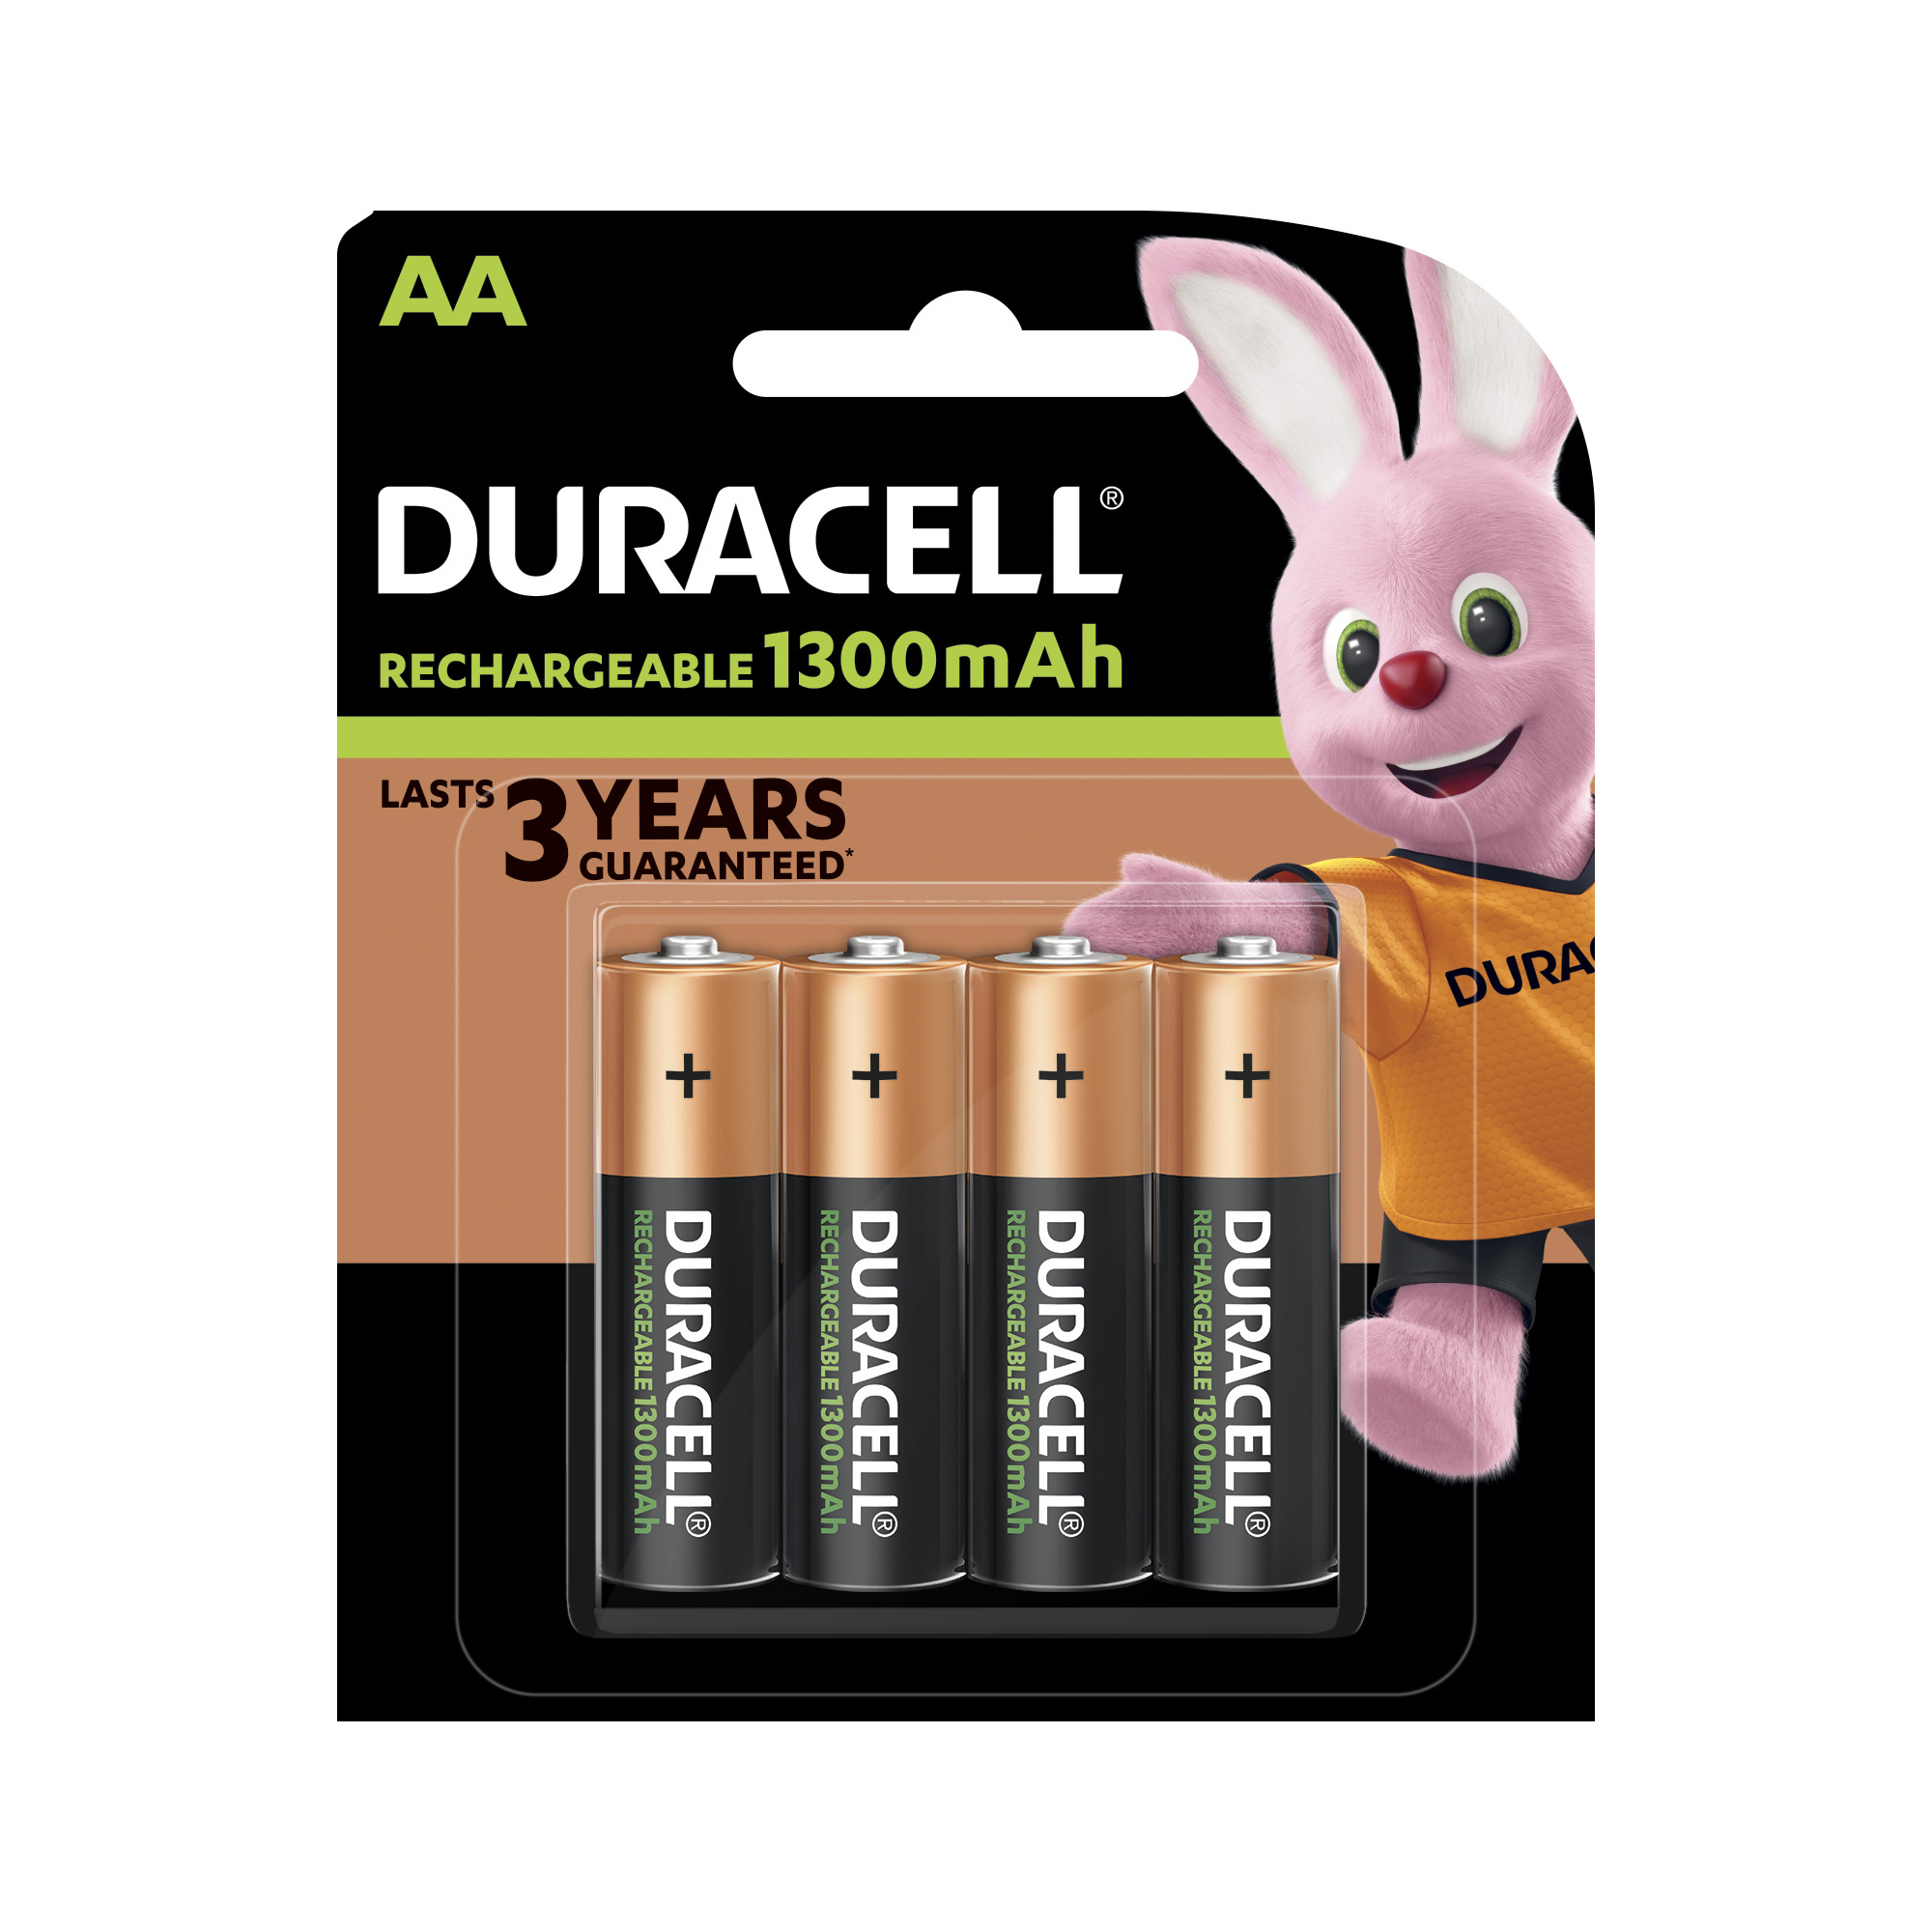 BP Duracell CEF14 Battery Charger Hi Speed for AA/AAA [FREE AA Batteries Pk4] Mar 2020